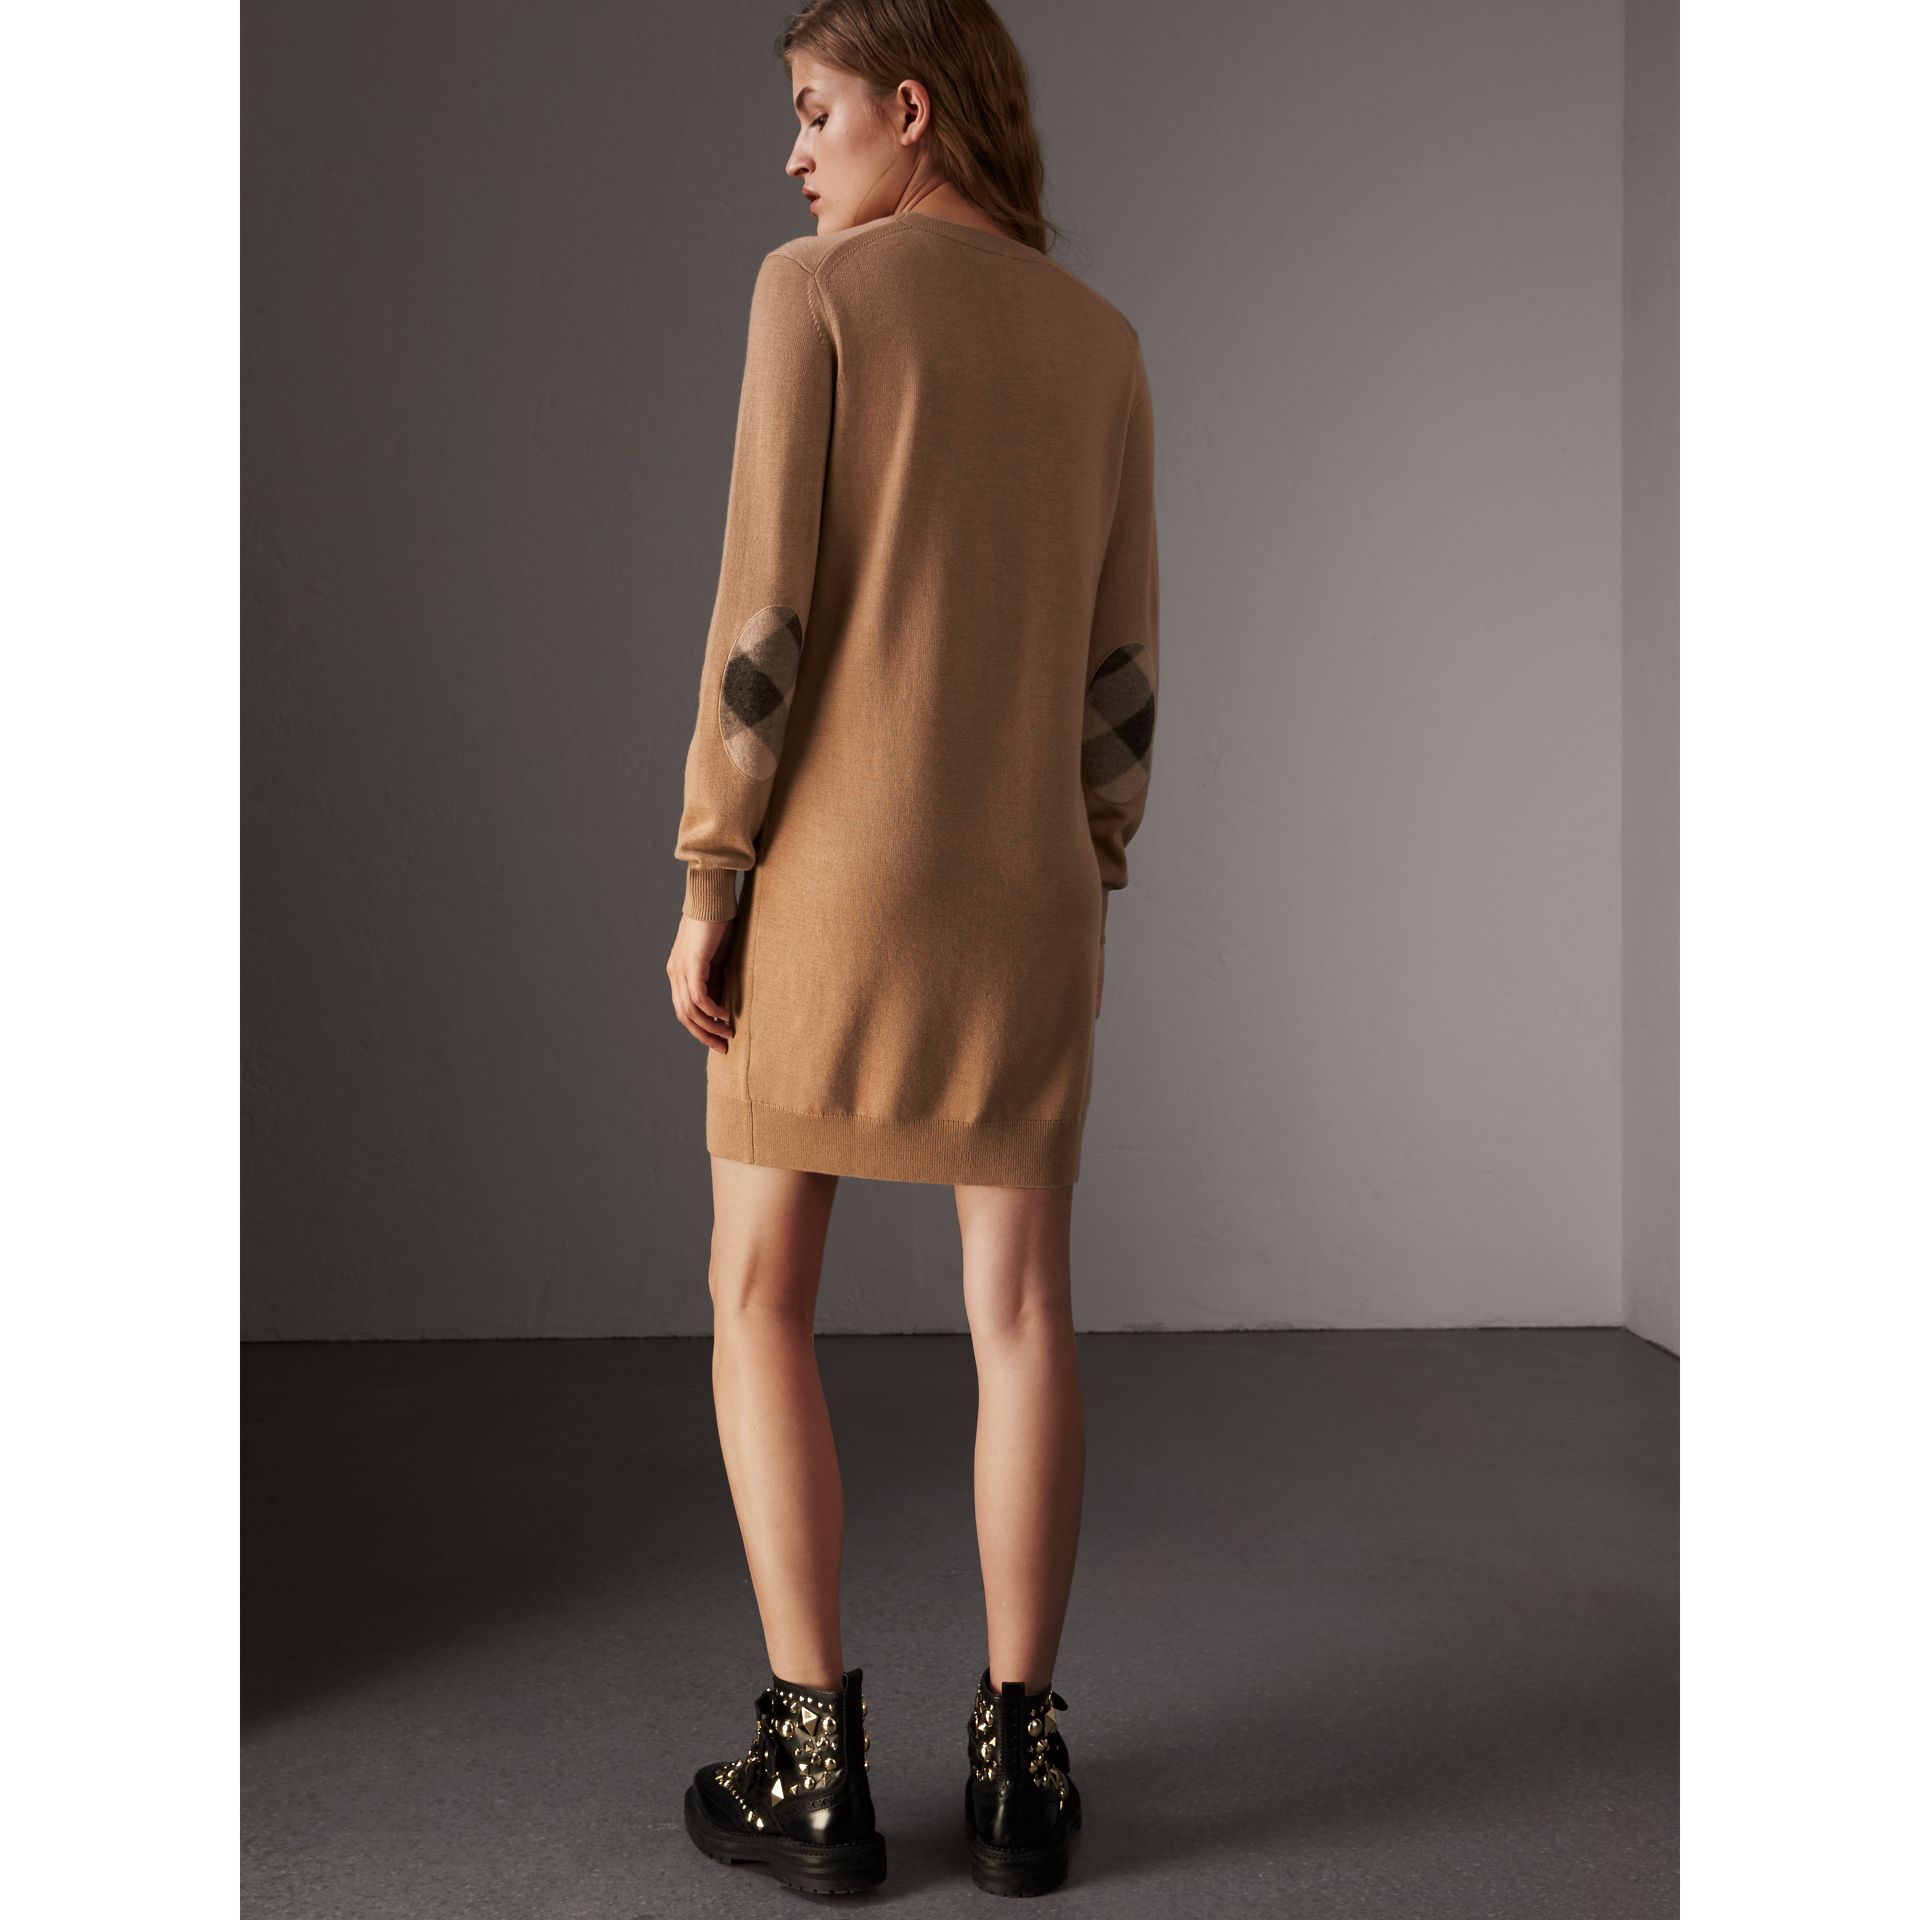 Check Elbow Detail Merino Wool Sweater Dress in Camel - Women | Burberry - gallery image 2